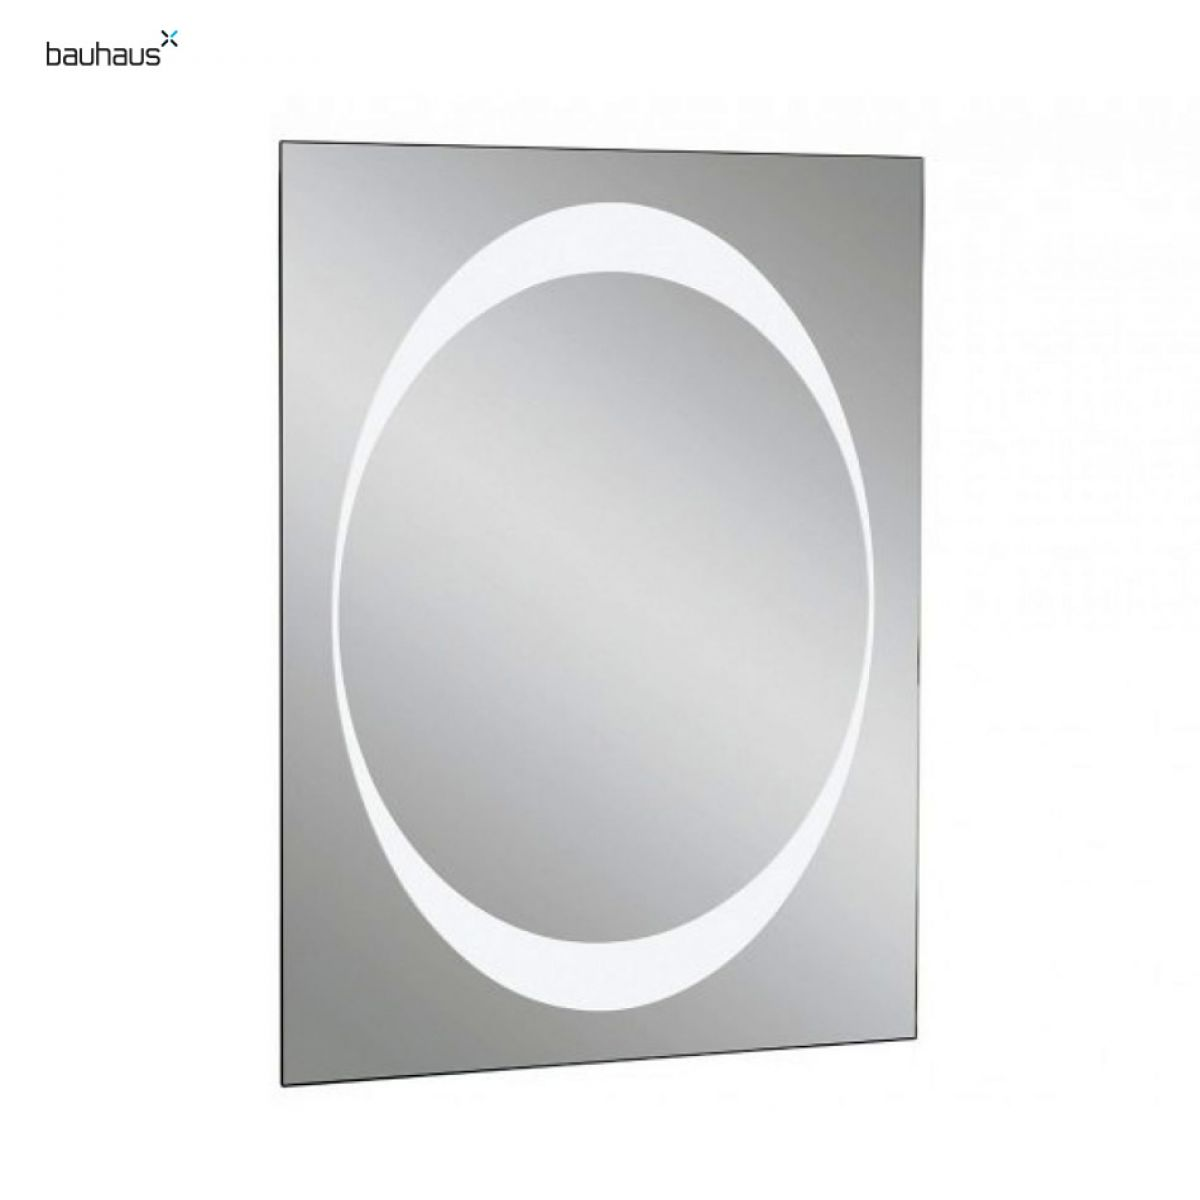 New Pulse Illuminated Bluetooth Bathroom Mirror With Builtin Speakers